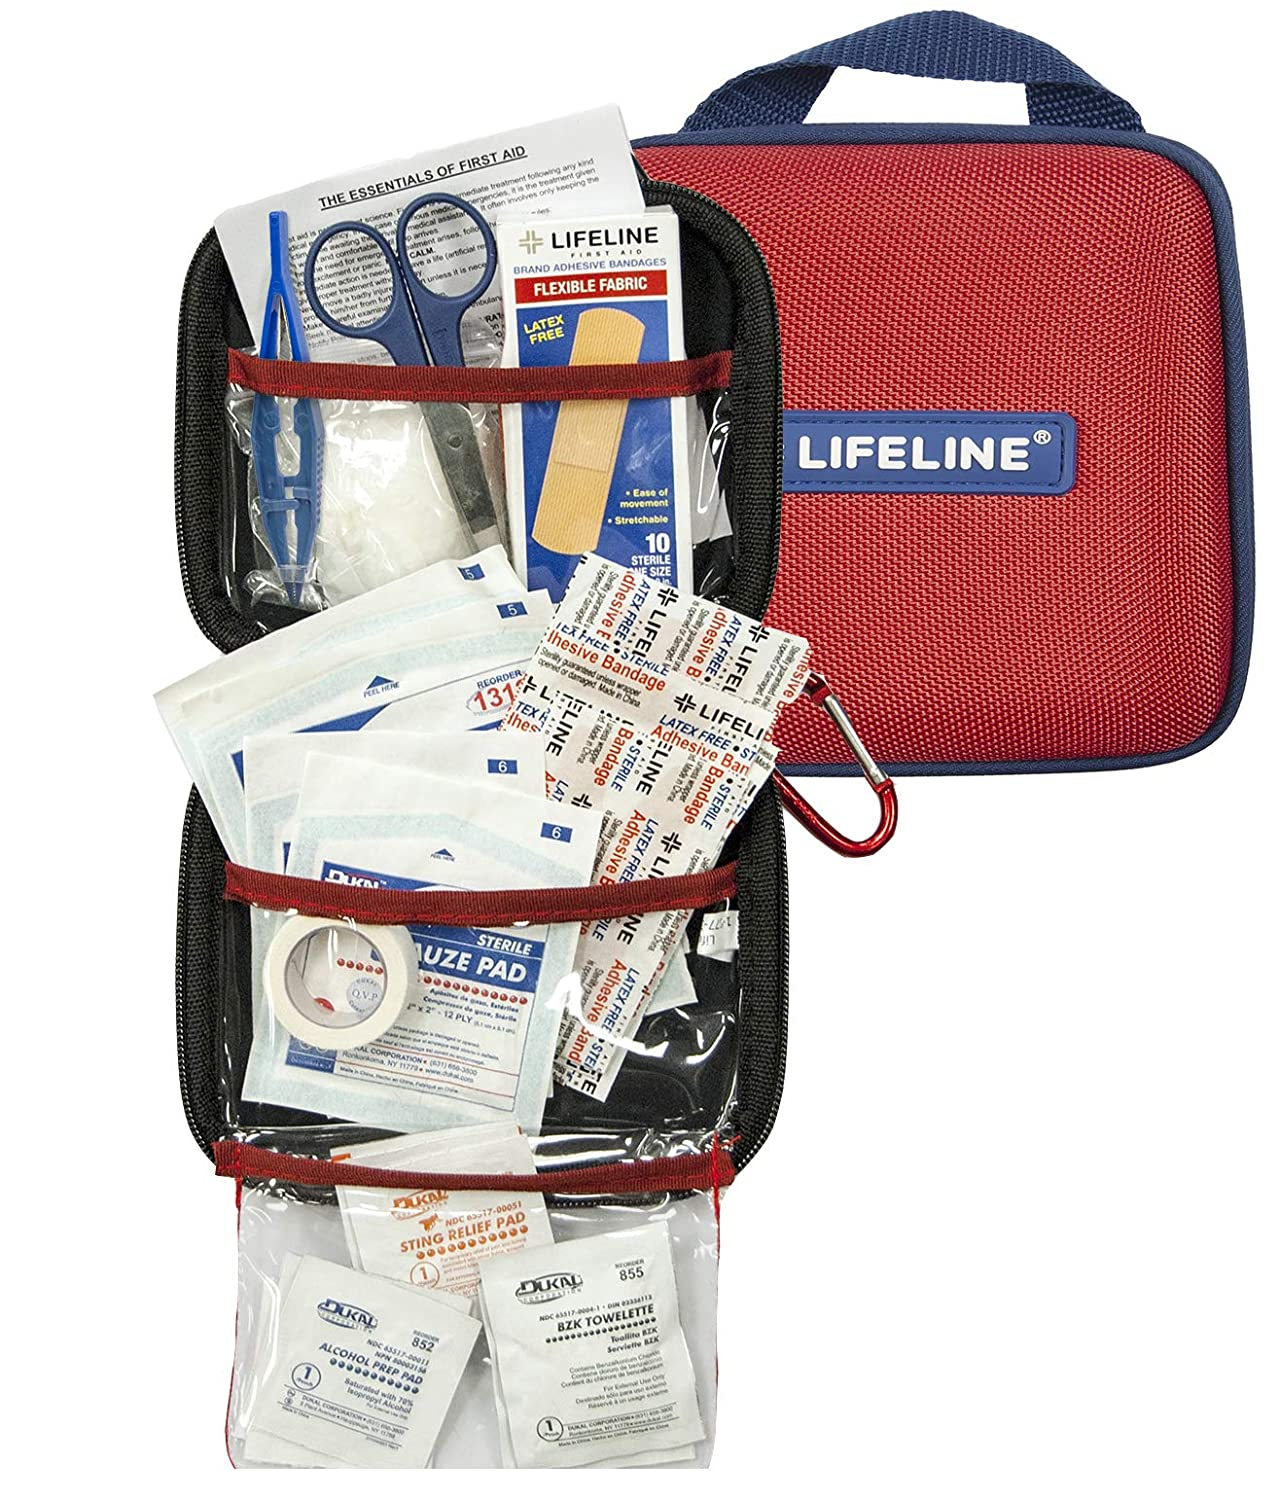 LifeLine Eva Medical First Aid Kit 53-Piece Emergency Bag Trauma Survival Camp